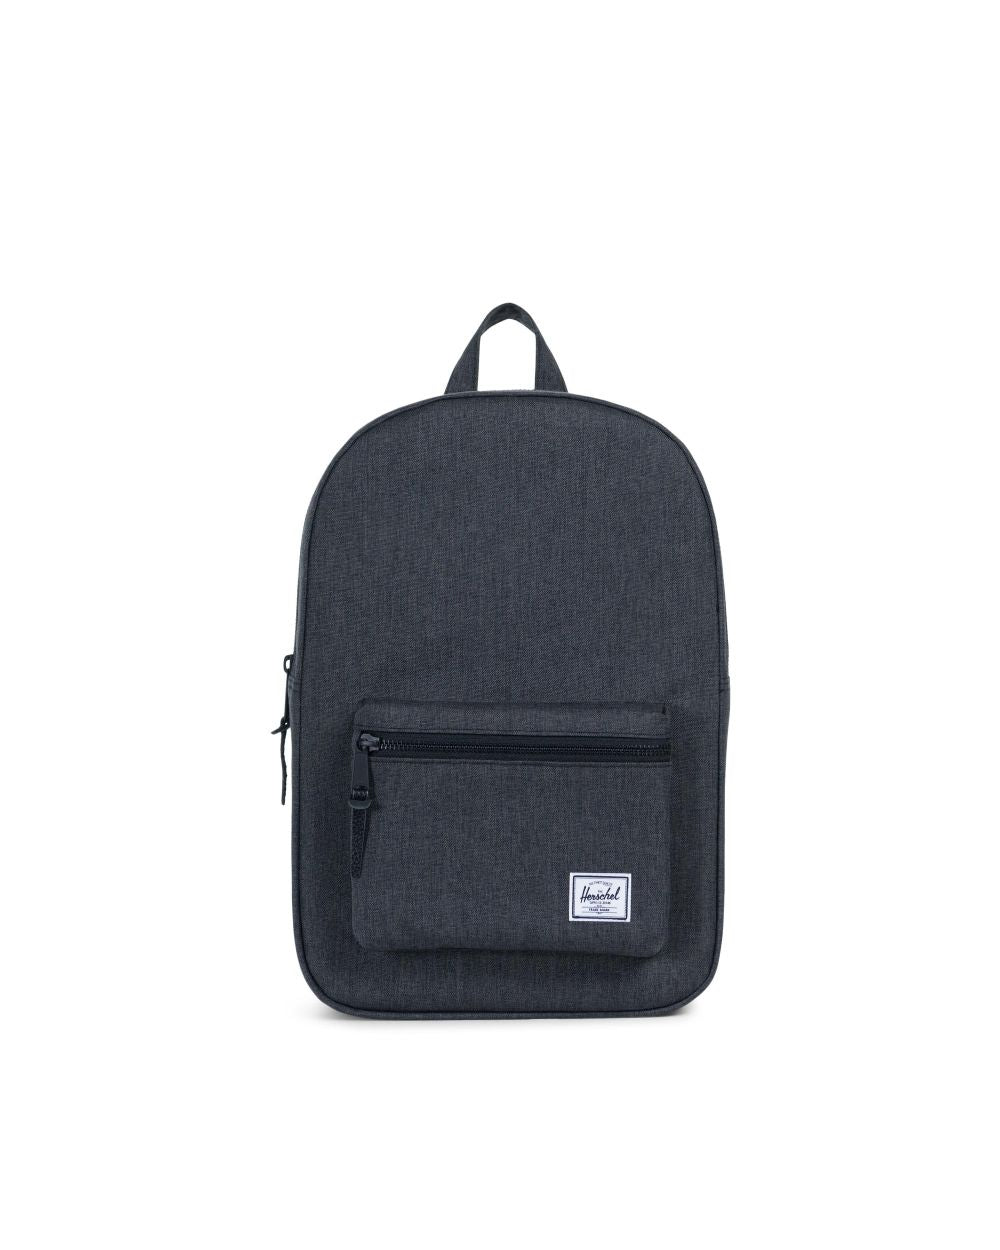 Herschel Supply Co. - Settlement Backpack, Black Crosshatch